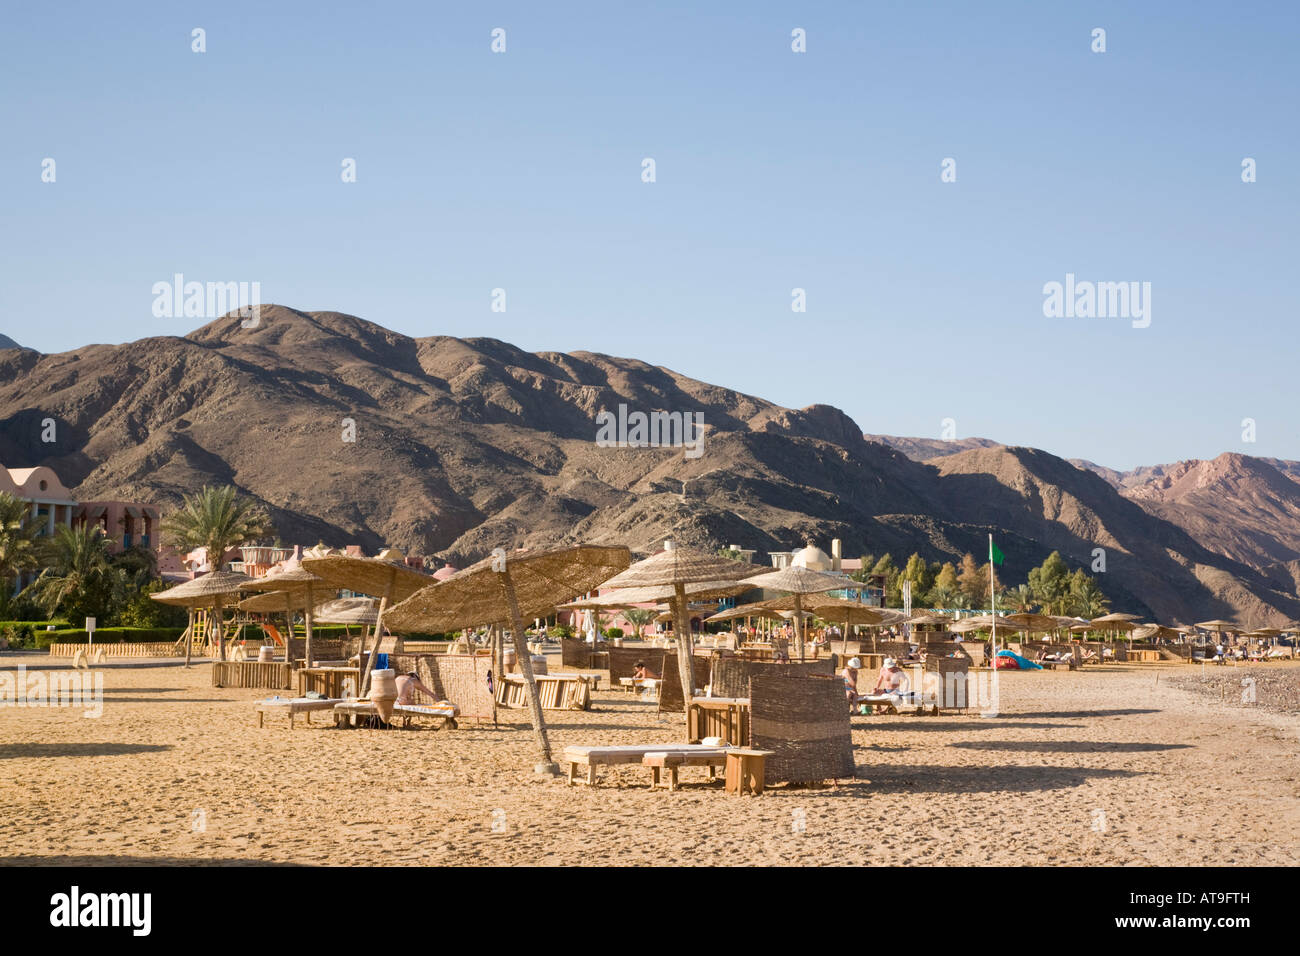 quiet sandy beach with mountain backdrop in taba heights resort on